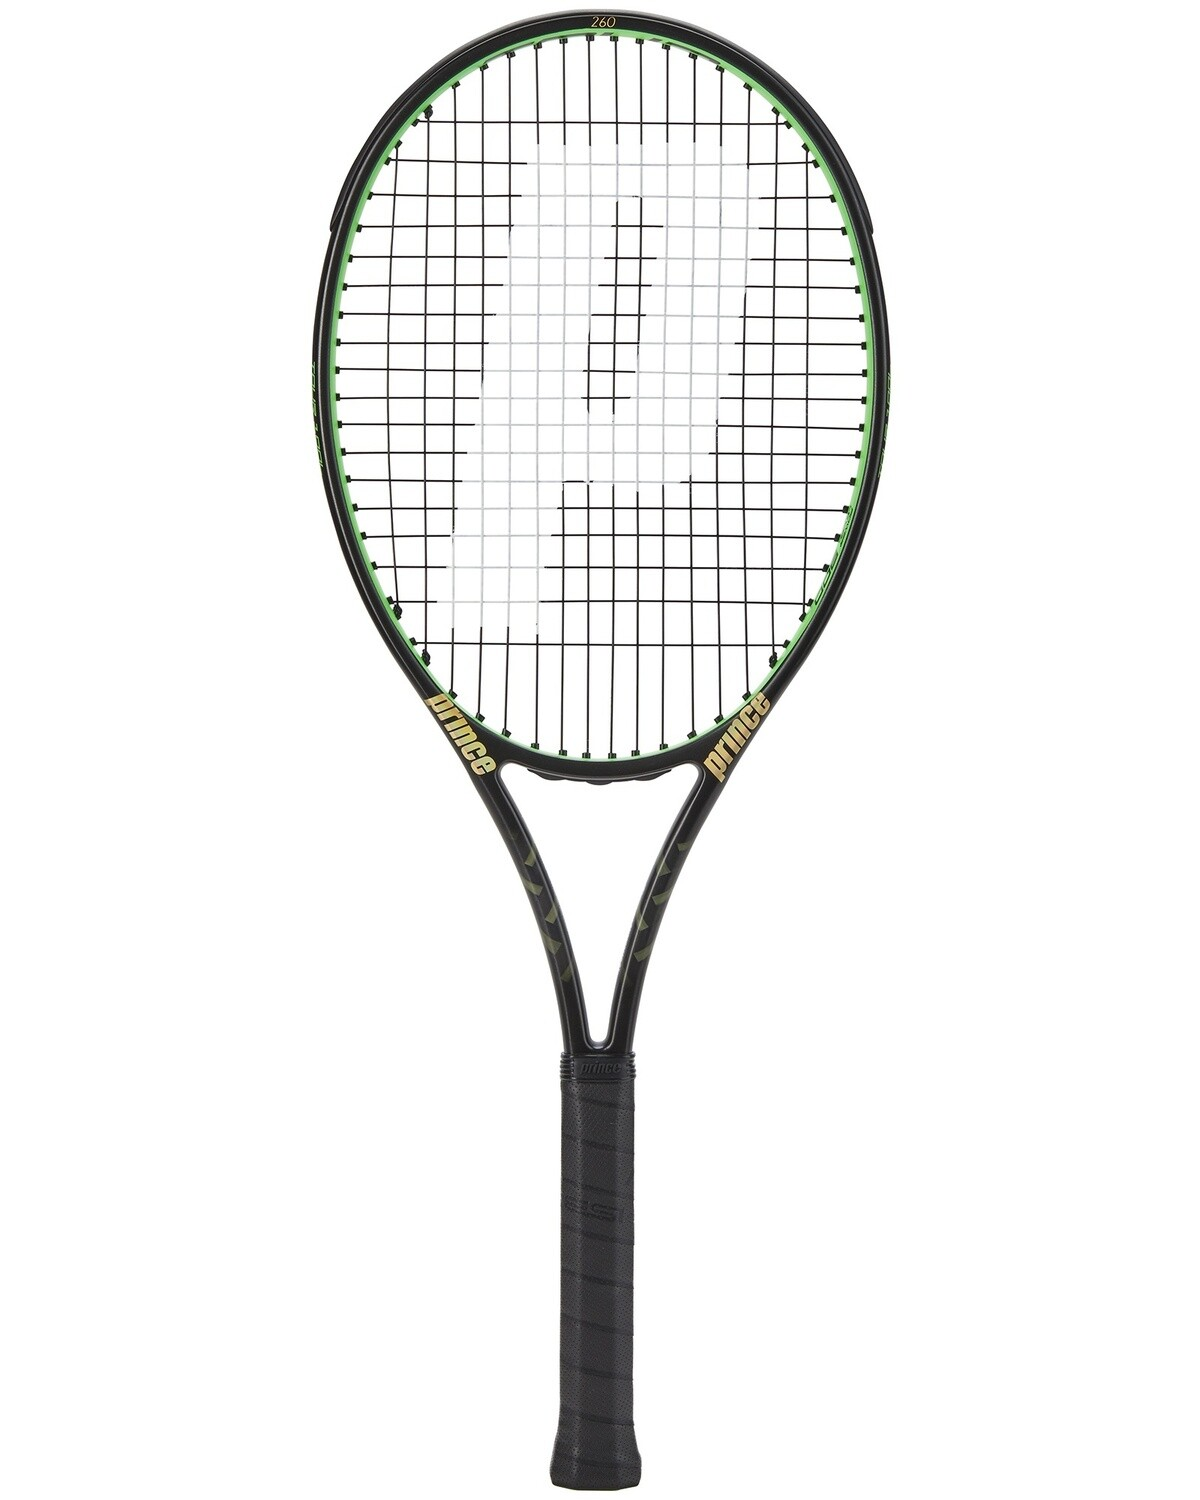 TXT2 Tour 100L 260 Black/Green Tennis Racket L1